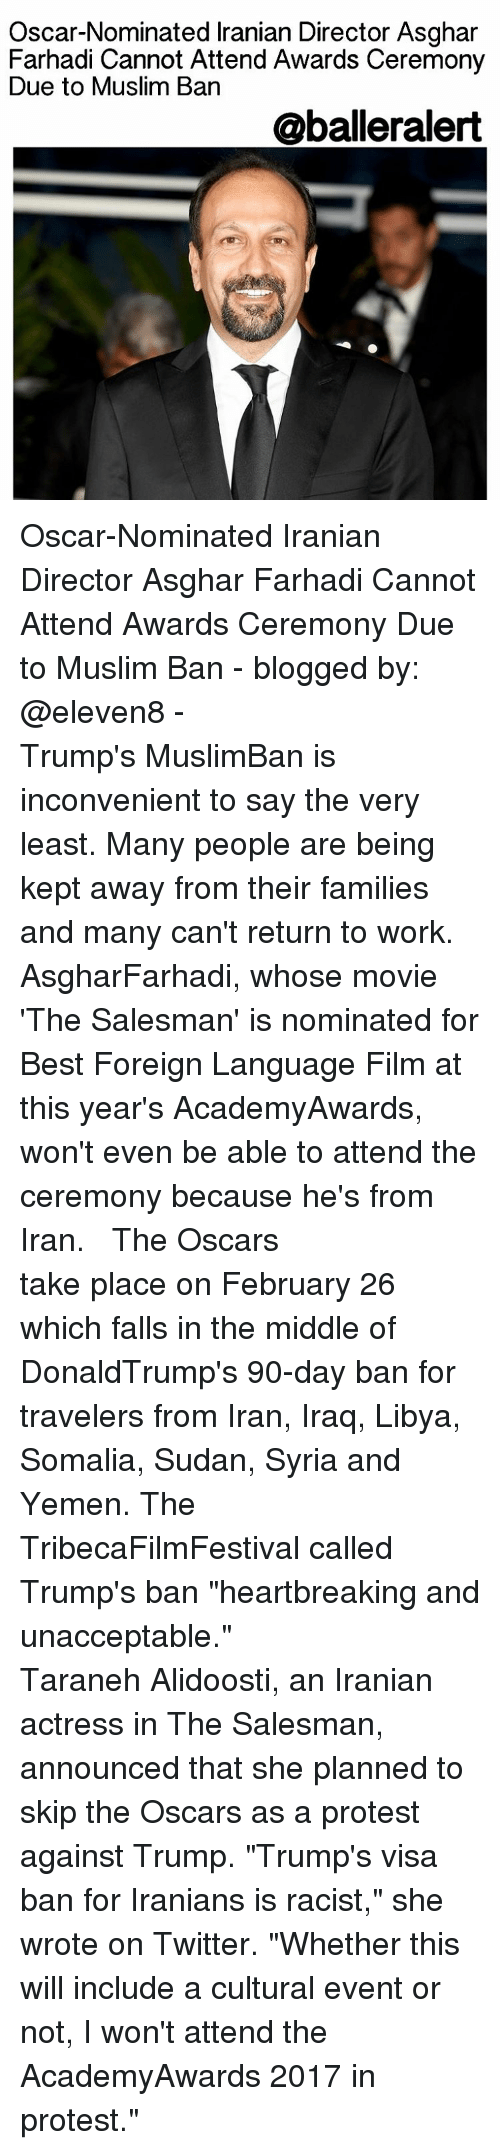 "Memes, Muslim, and Oscars: Oscar-Nominated lranian Director Asghar  Farhadi Cannot Attend Awards Ceremony  Due to Muslim Ban  @balleralert Oscar-Nominated Iranian Director Asghar Farhadi Cannot Attend Awards Ceremony Due to Muslim Ban - blogged by: @eleven8 - ⠀⠀⠀⠀⠀⠀⠀⠀⠀ ⠀⠀⠀⠀⠀⠀⠀⠀⠀ Trump's MuslimBan is inconvenient to say the very least. Many people are being kept away from their families and many can't return to work. AsgharFarhadi, whose movie 'The Salesman' is nominated for Best Foreign Language Film at this year's AcademyAwards, won't even be able to attend the ceremony because he's from Iran. ⠀⠀⠀⠀⠀⠀⠀⠀⠀ ⠀⠀⠀⠀⠀⠀⠀⠀⠀ The Oscars take place on February 26 which falls in the middle of DonaldTrump's 90-day ban for travelers from Iran, Iraq, Libya, Somalia, Sudan, Syria and Yemen. The TribecaFilmFestival called Trump's ban ""heartbreaking and unacceptable."" ⠀⠀⠀⠀⠀⠀⠀⠀⠀ ⠀⠀⠀⠀⠀⠀⠀⠀⠀ Taraneh Alidoosti, an Iranian actress in The Salesman, announced that she planned to skip the Oscars as a protest against Trump. ""Trump's visa ban for Iranians is racist,"" she wrote on Twitter. ""Whether this will include a cultural event or not, I won't attend the AcademyAwards 2017 in protest."""